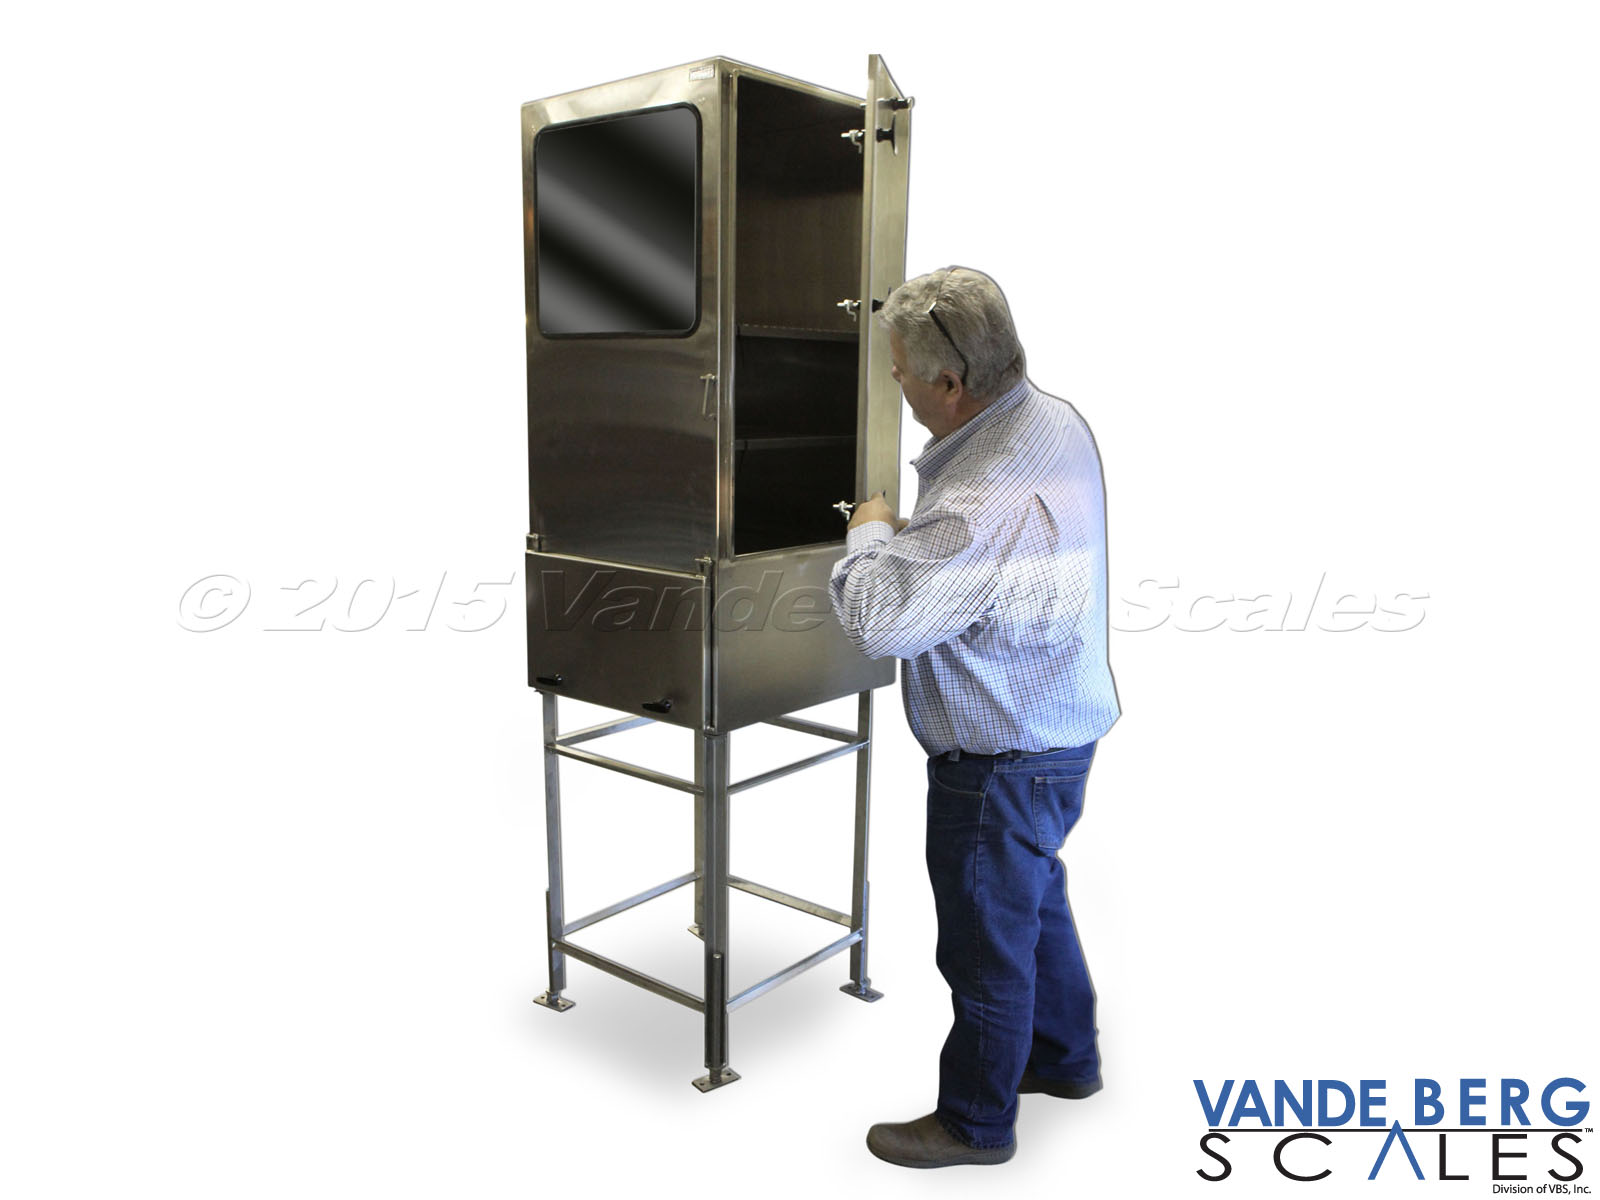 Tall stainless steel NEMA-4X enclosure and stand with side access panel and view window.